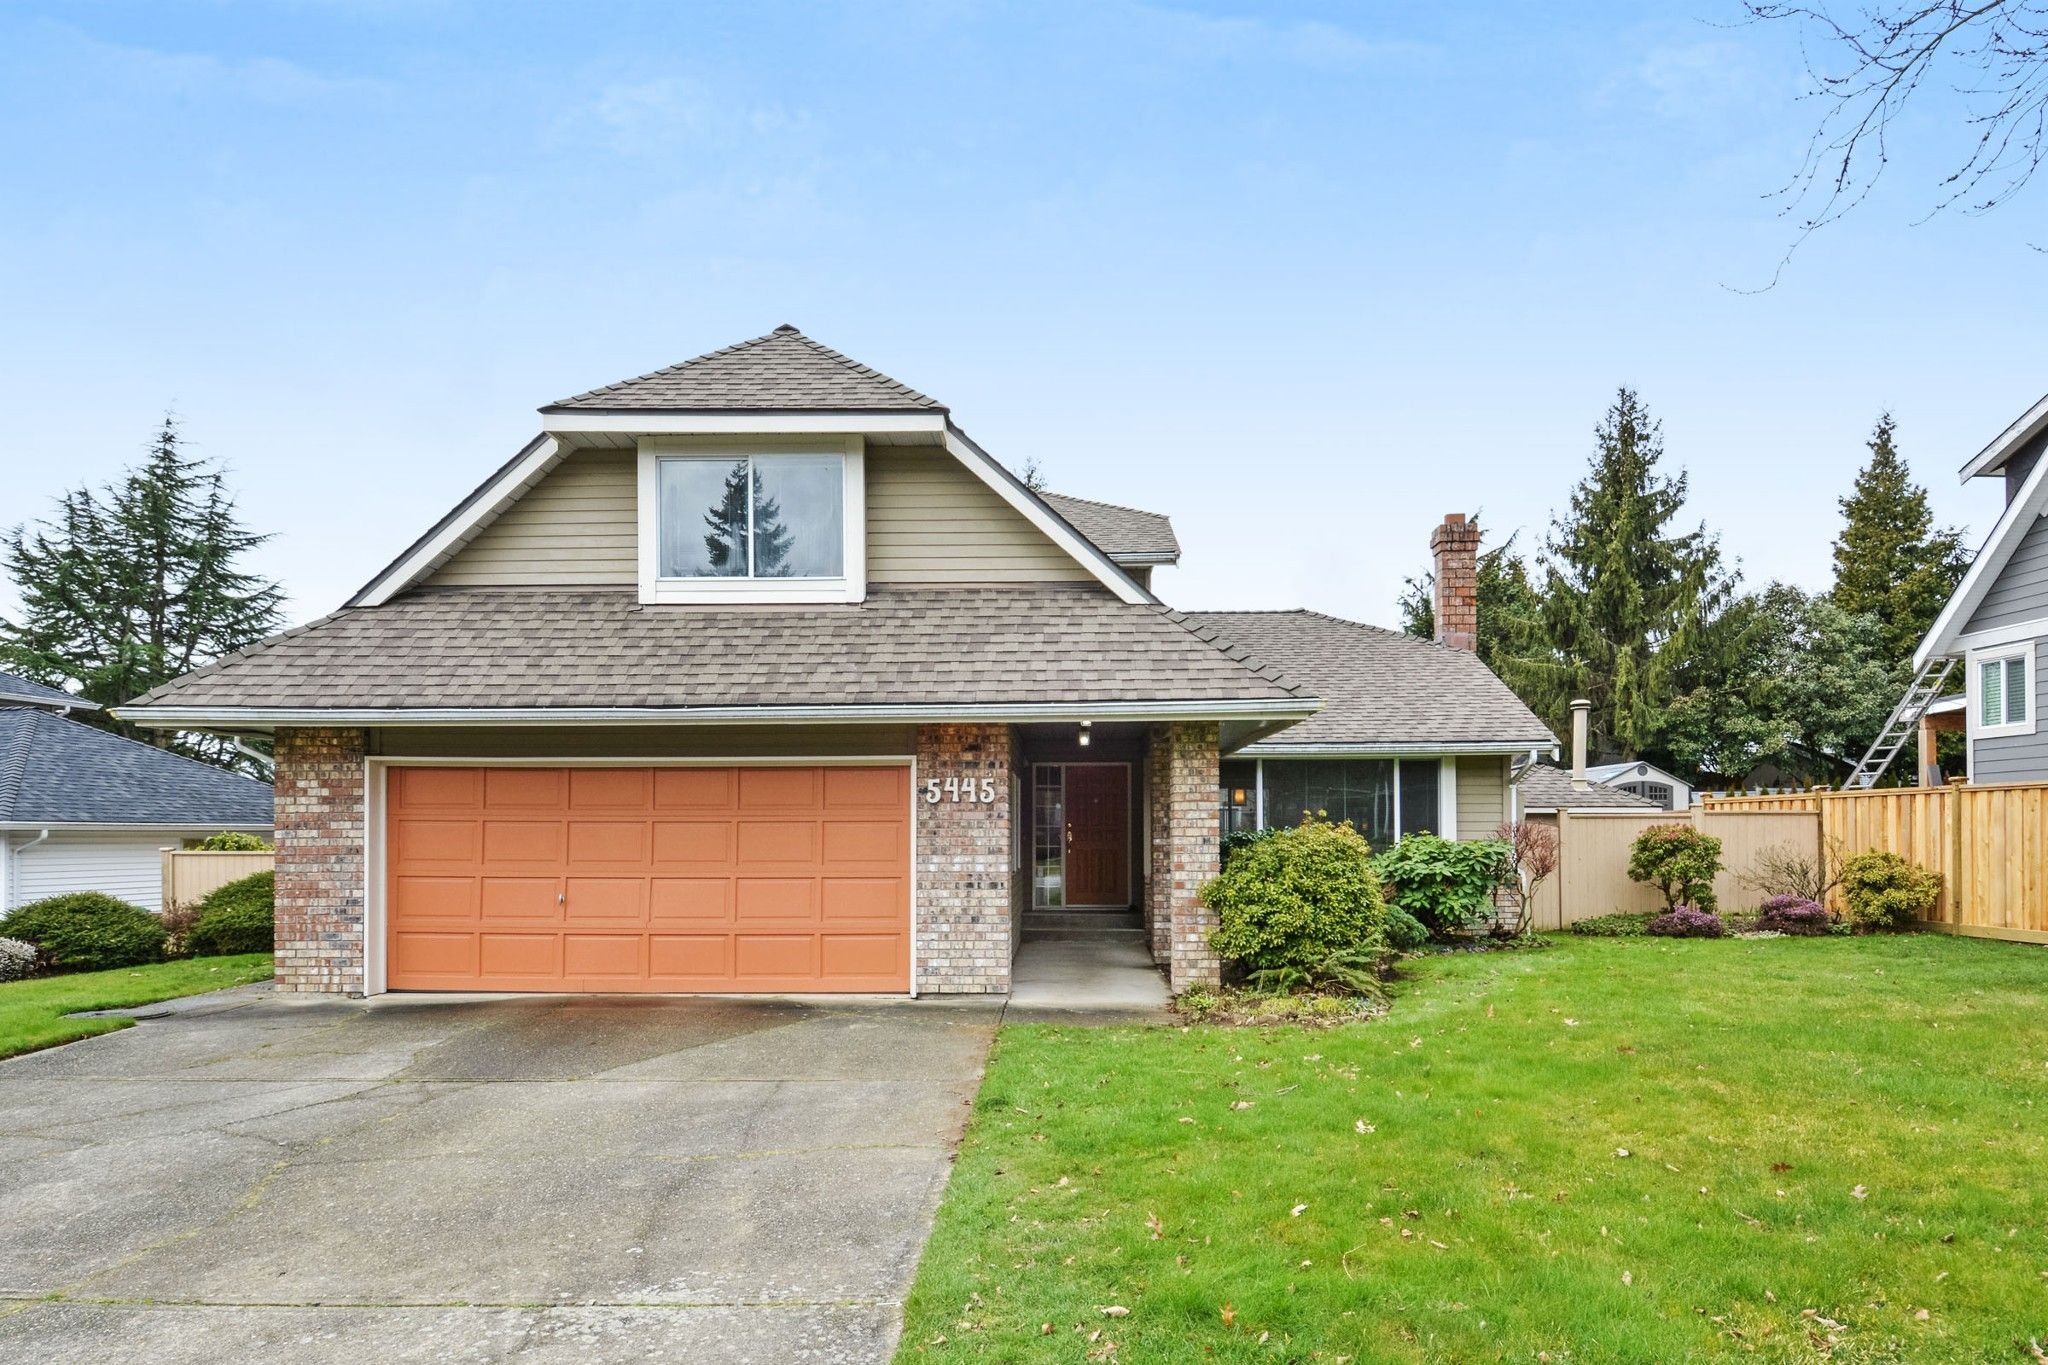 """Main Photo: 5445 185 Street in Surrey: Cloverdale BC House for sale in """"HUNTER PARK"""" (Cloverdale)  : MLS®# R2243893"""